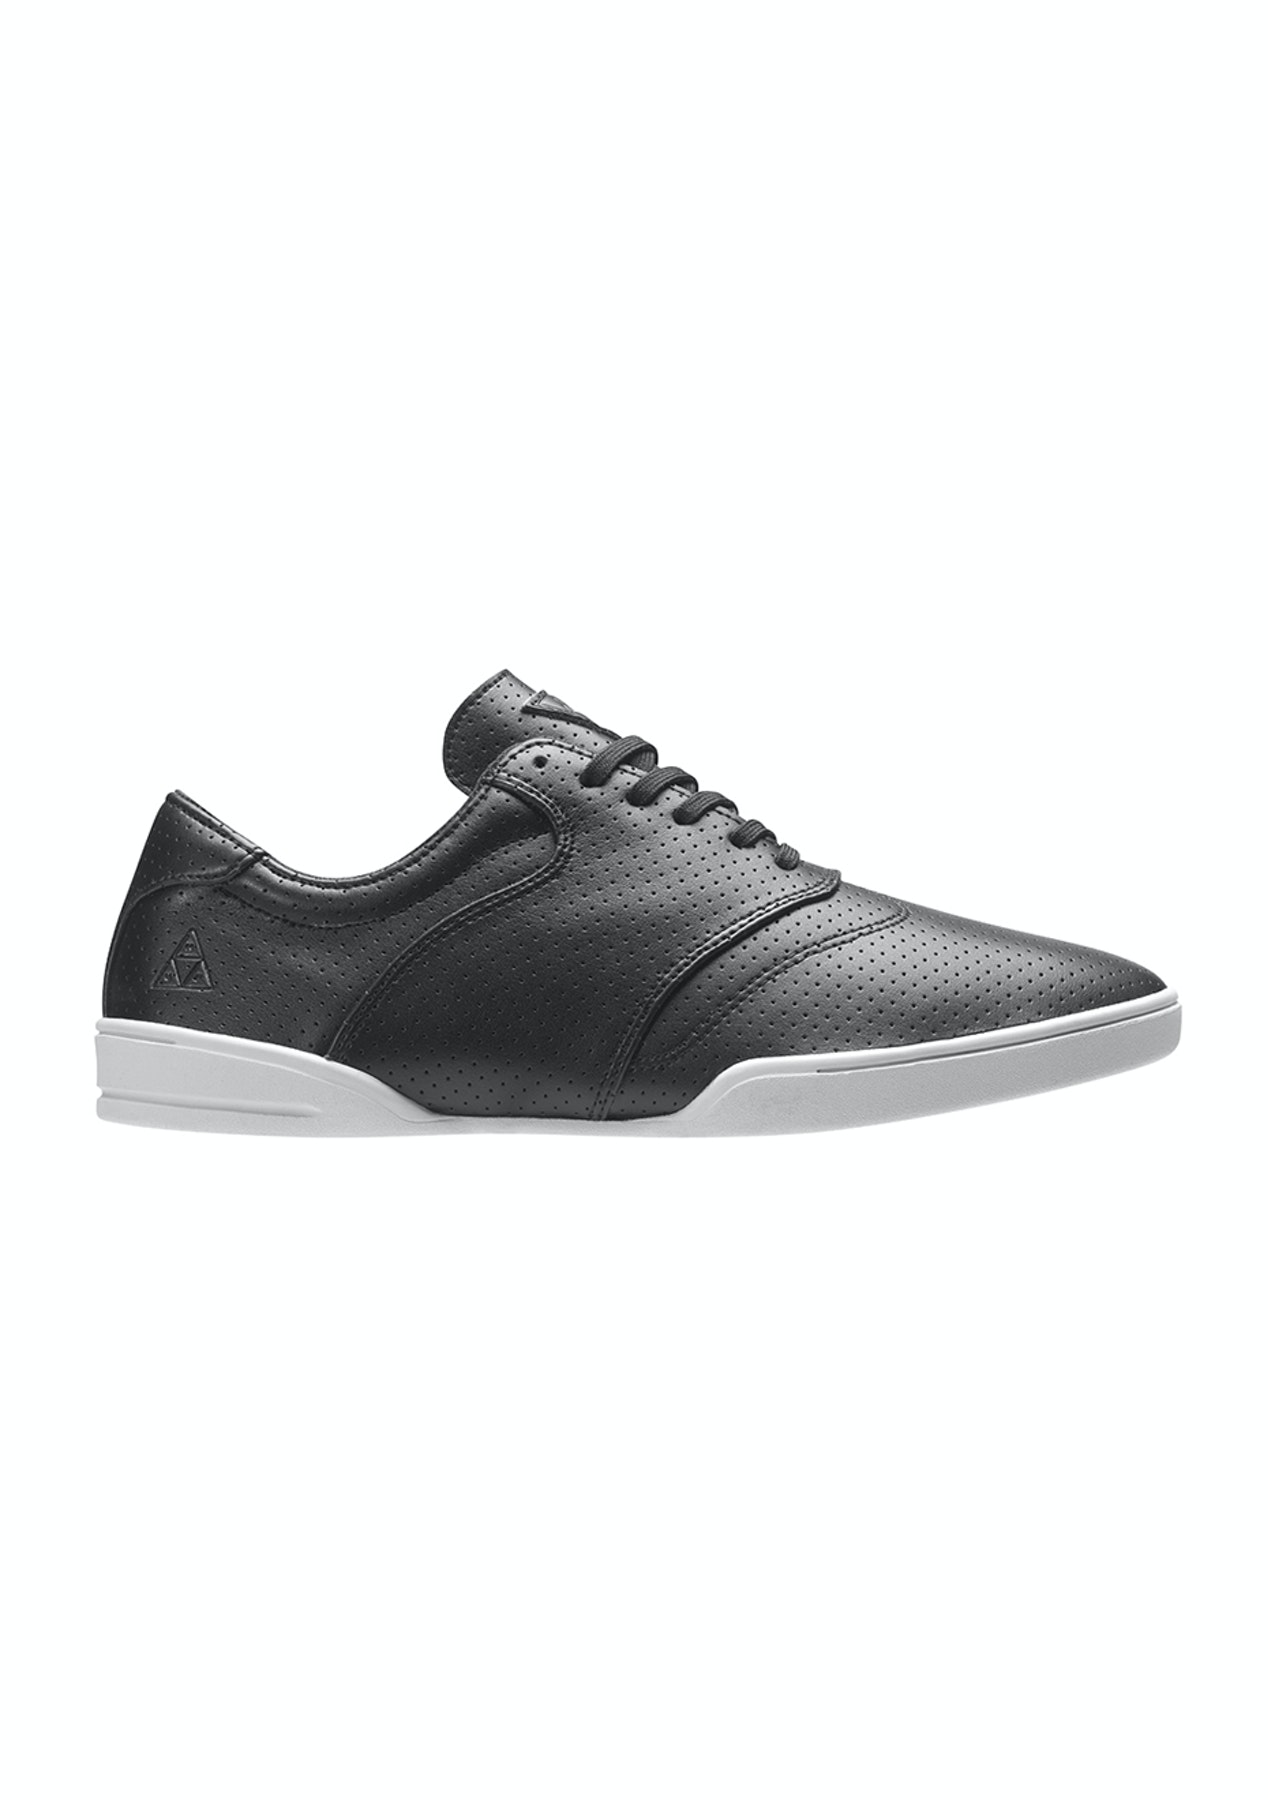 286f2522f5 HUF Dylan Shoe - Black Perf   Bone White - HUF Shoe Clearance - From  49.95  - Onceit